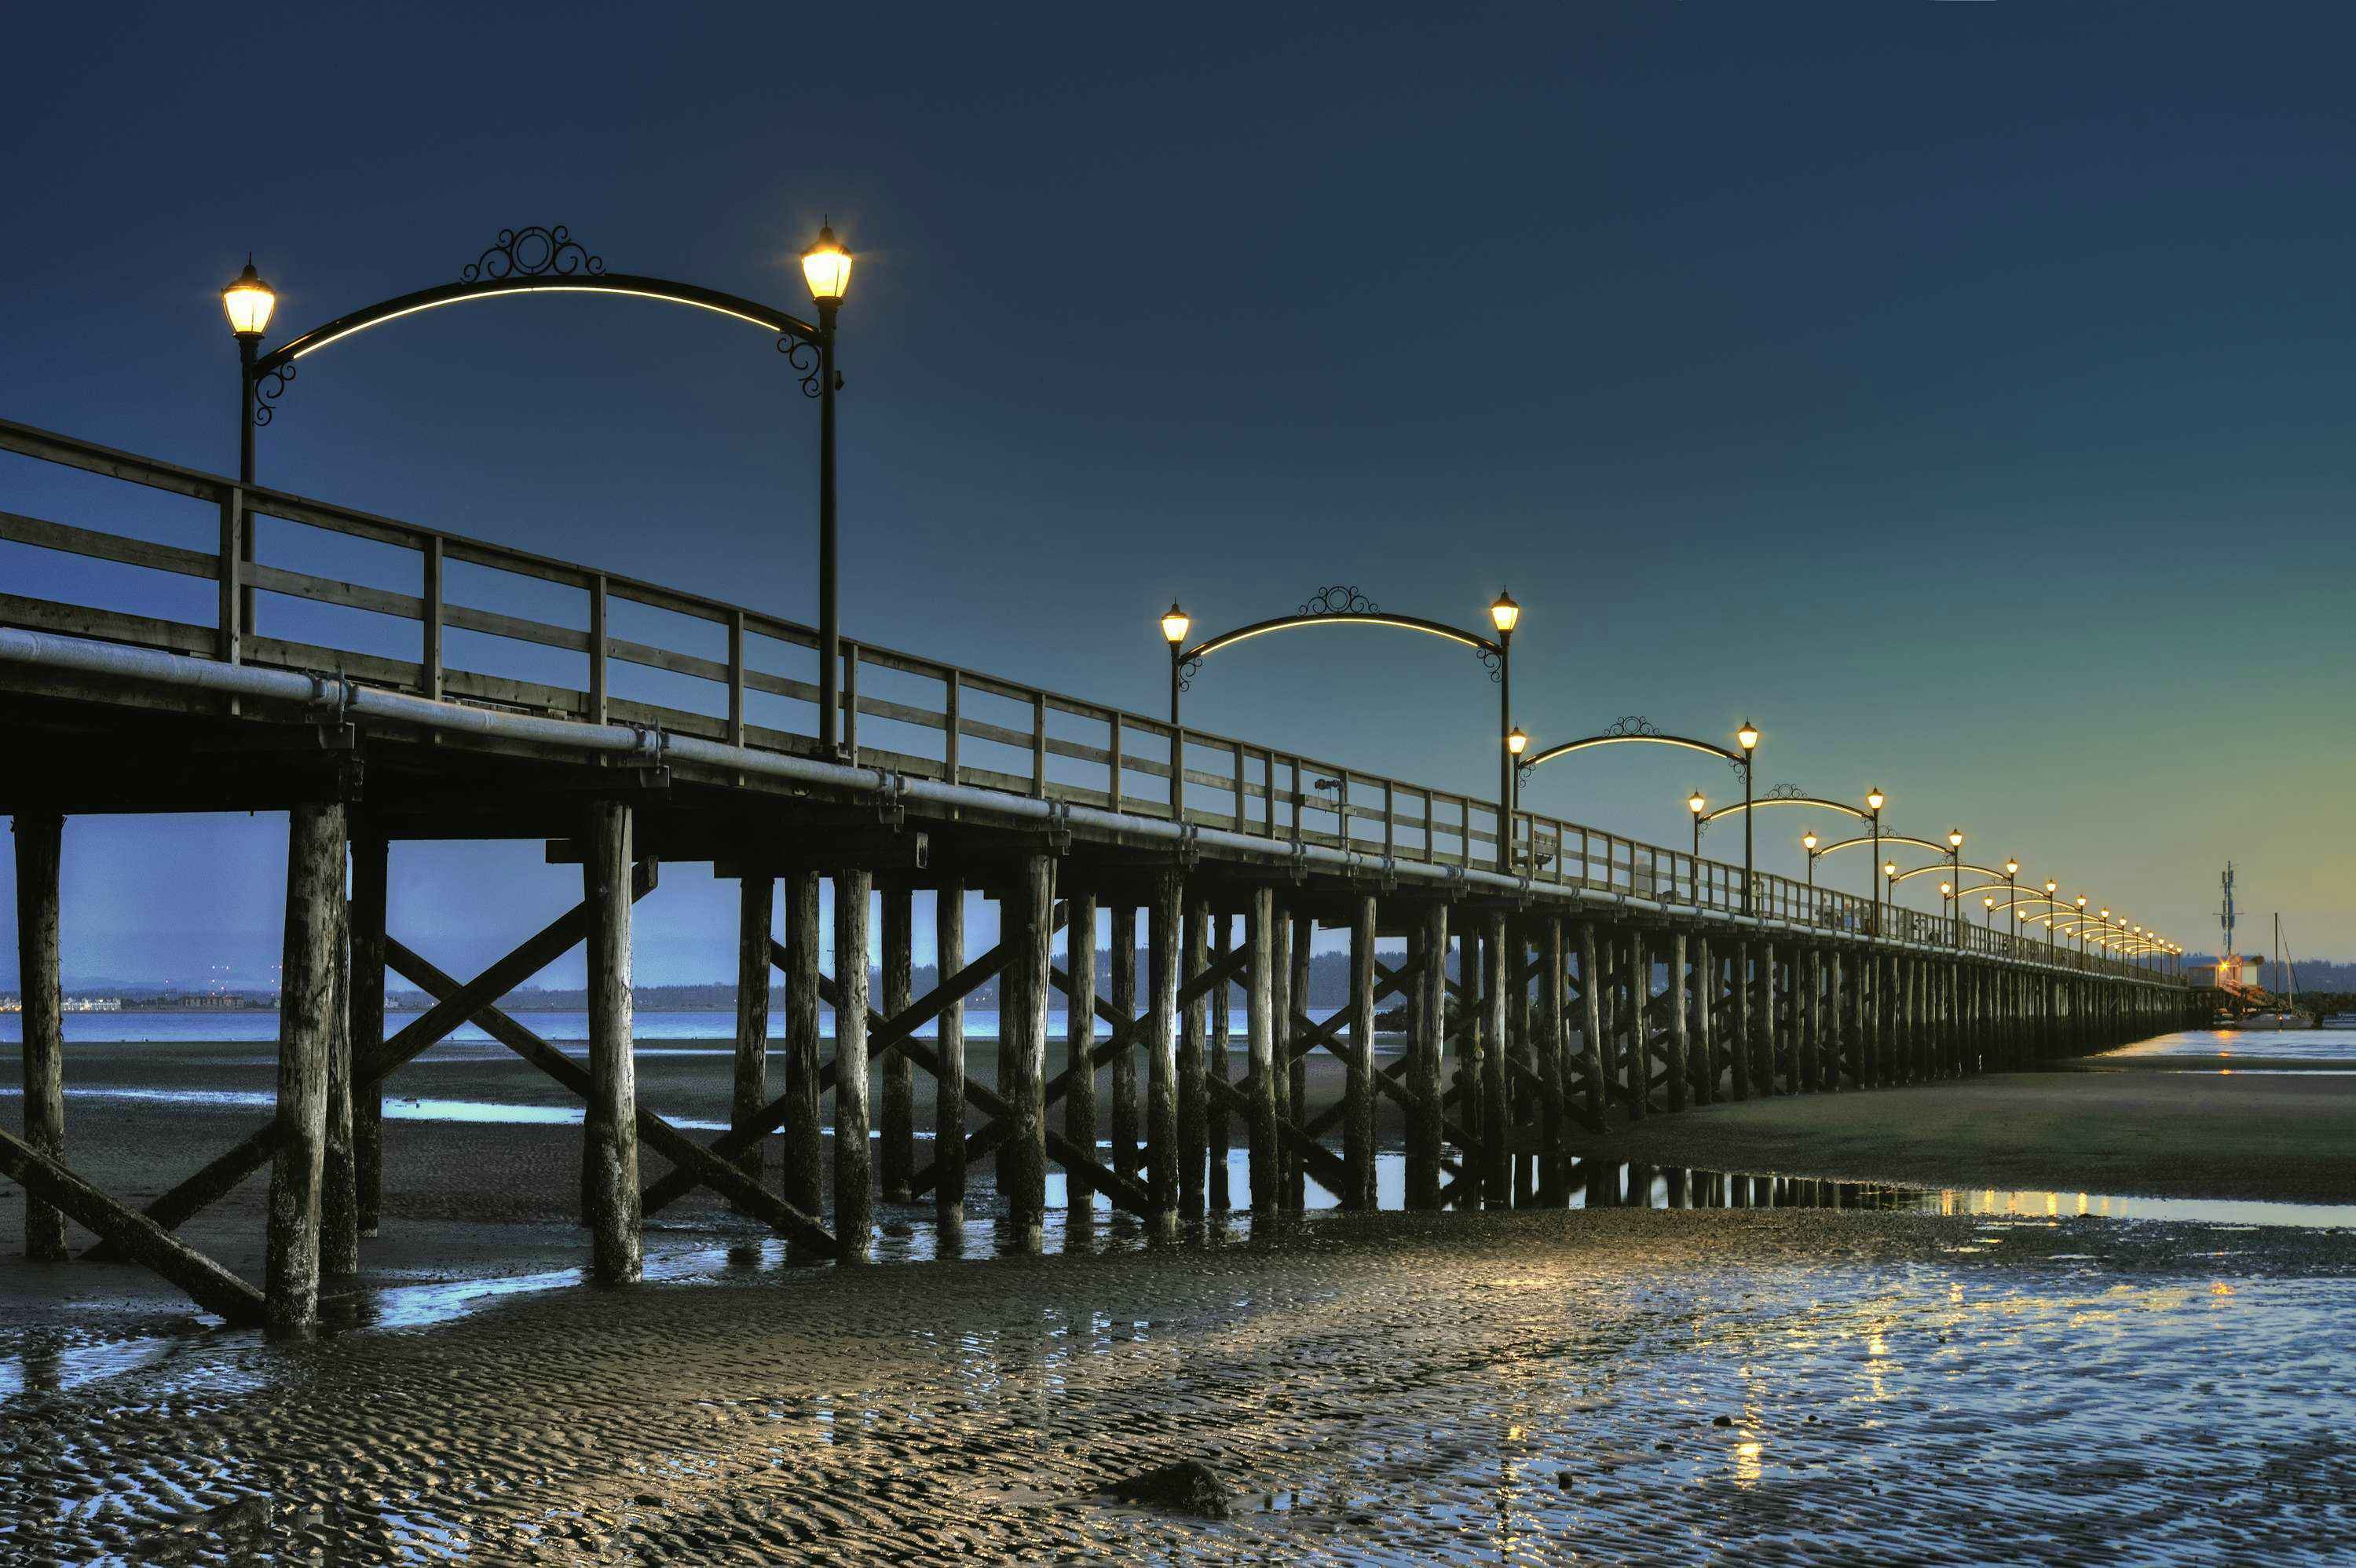 Lights Of Pier Architecture Travel